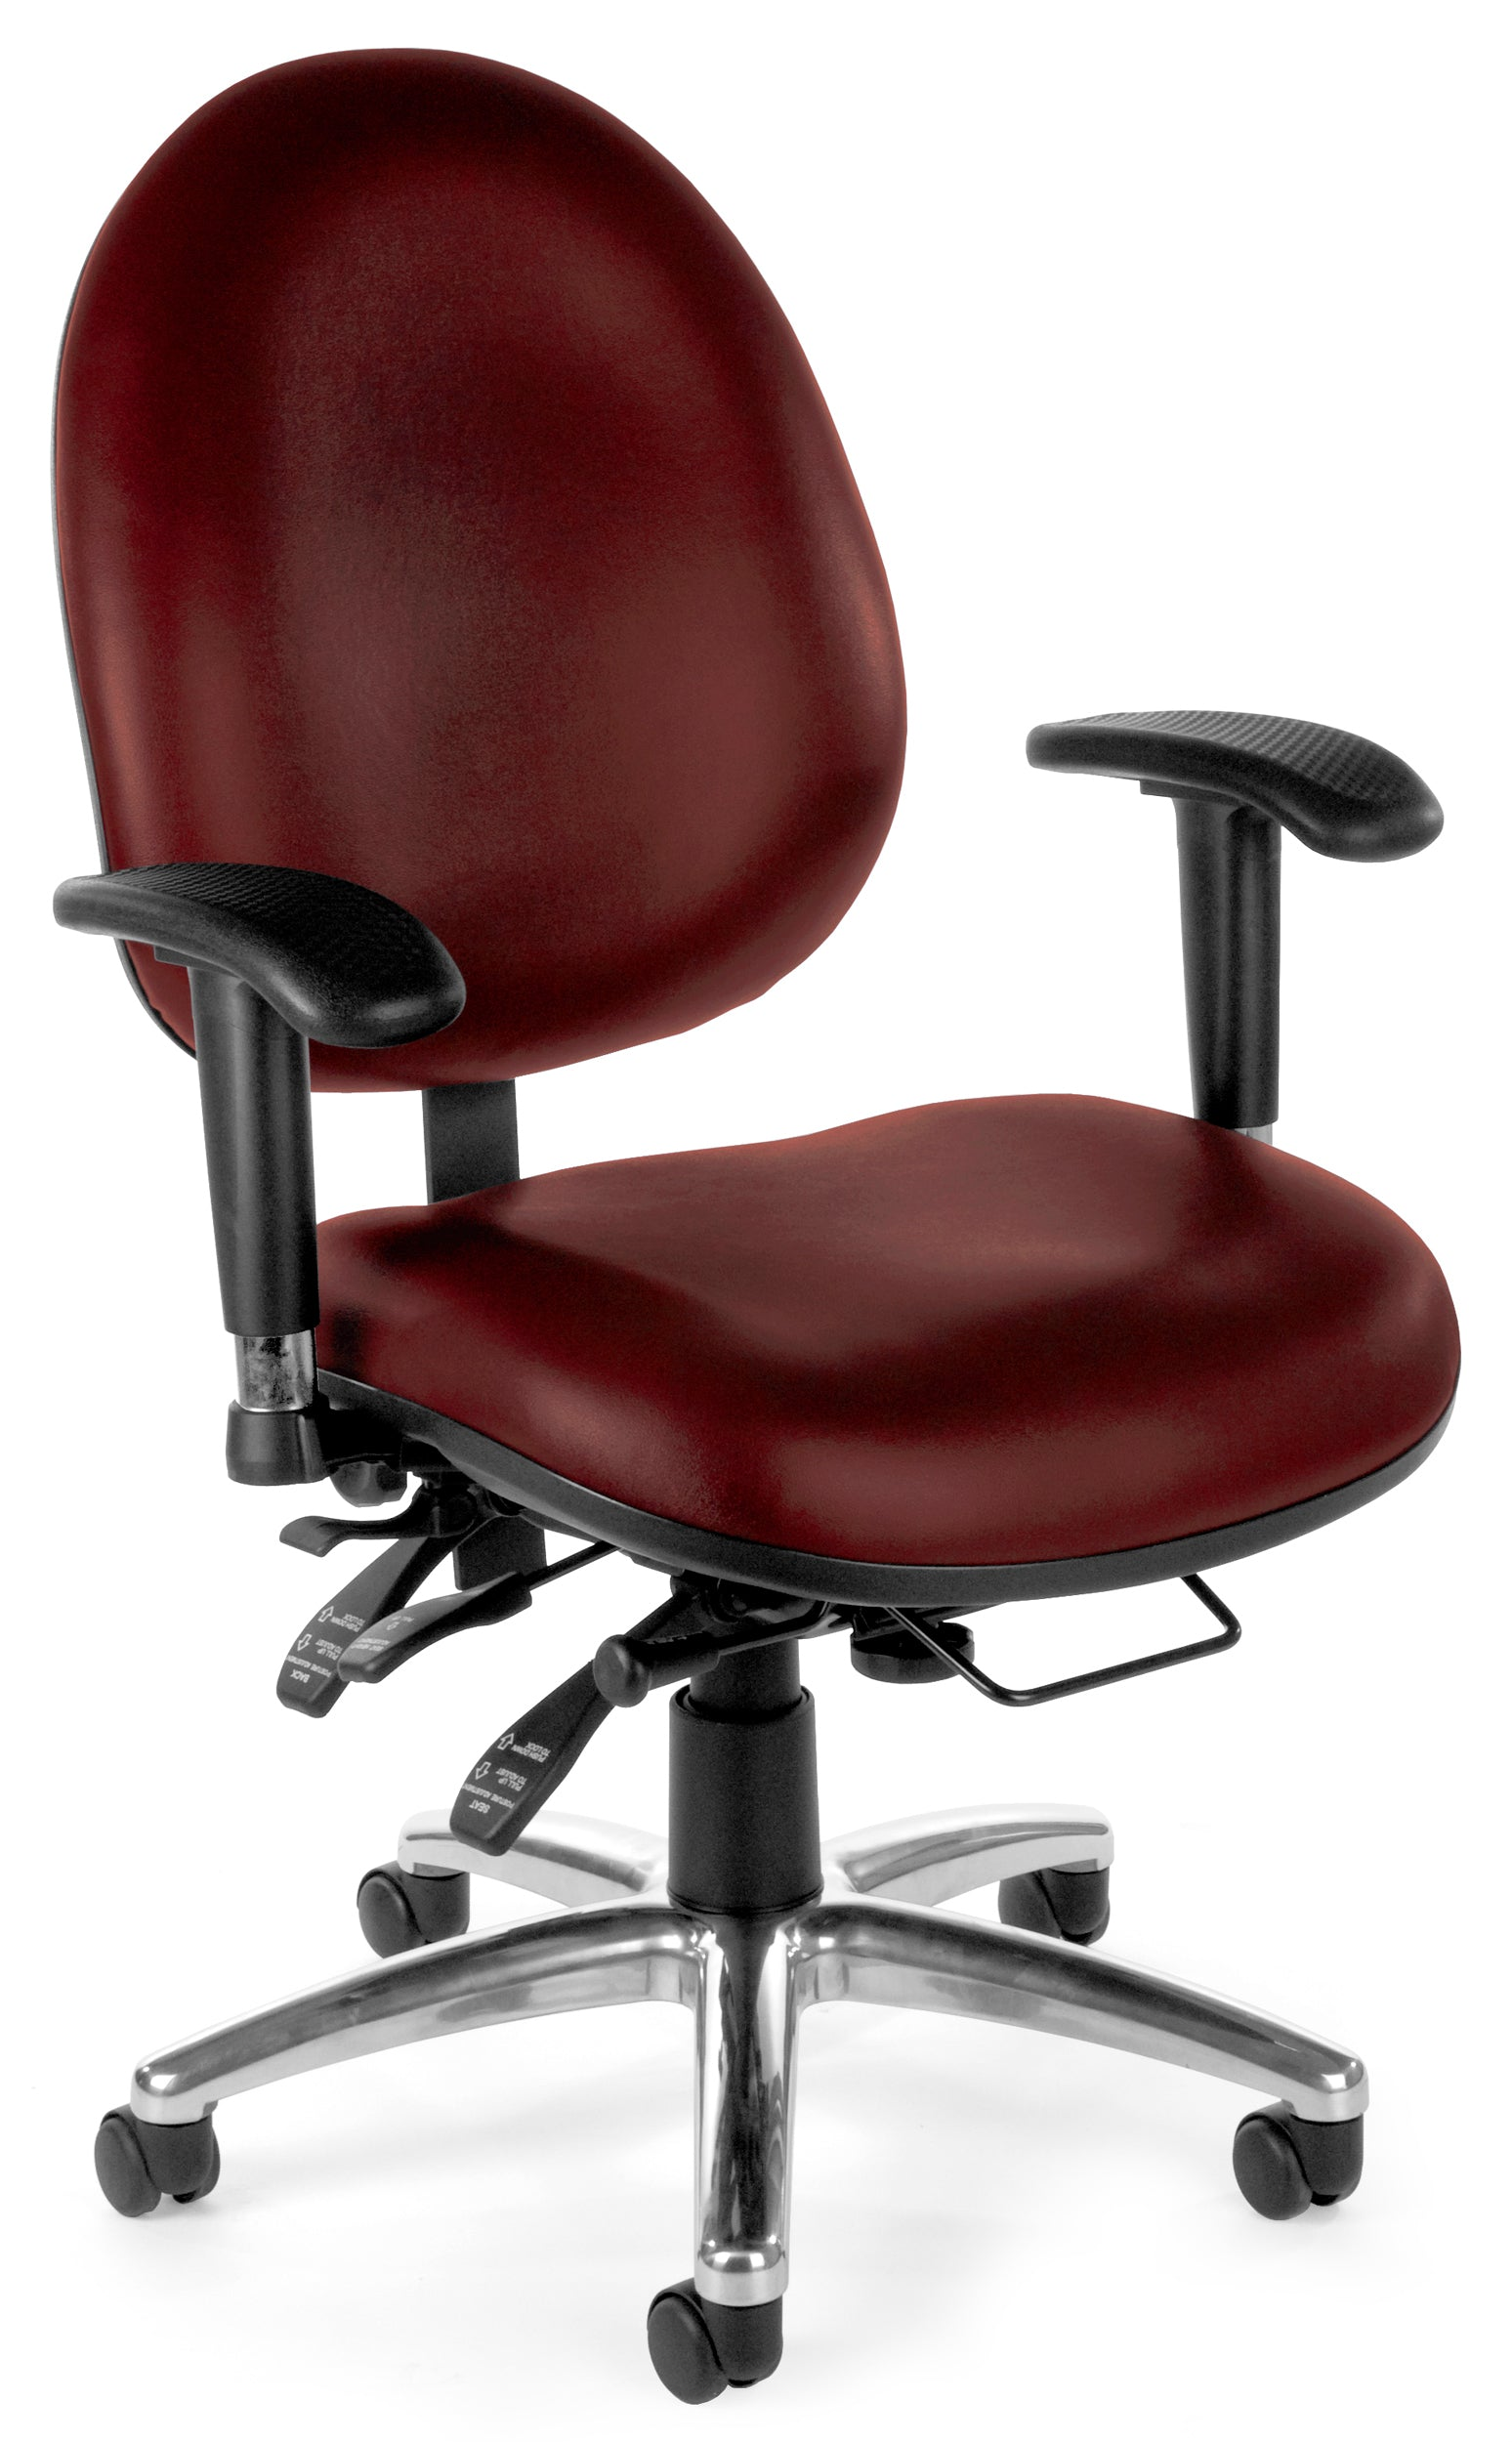 Ofminc Multi-Adjustable Ergonomic Vinyl Swivel Task Arms Chair